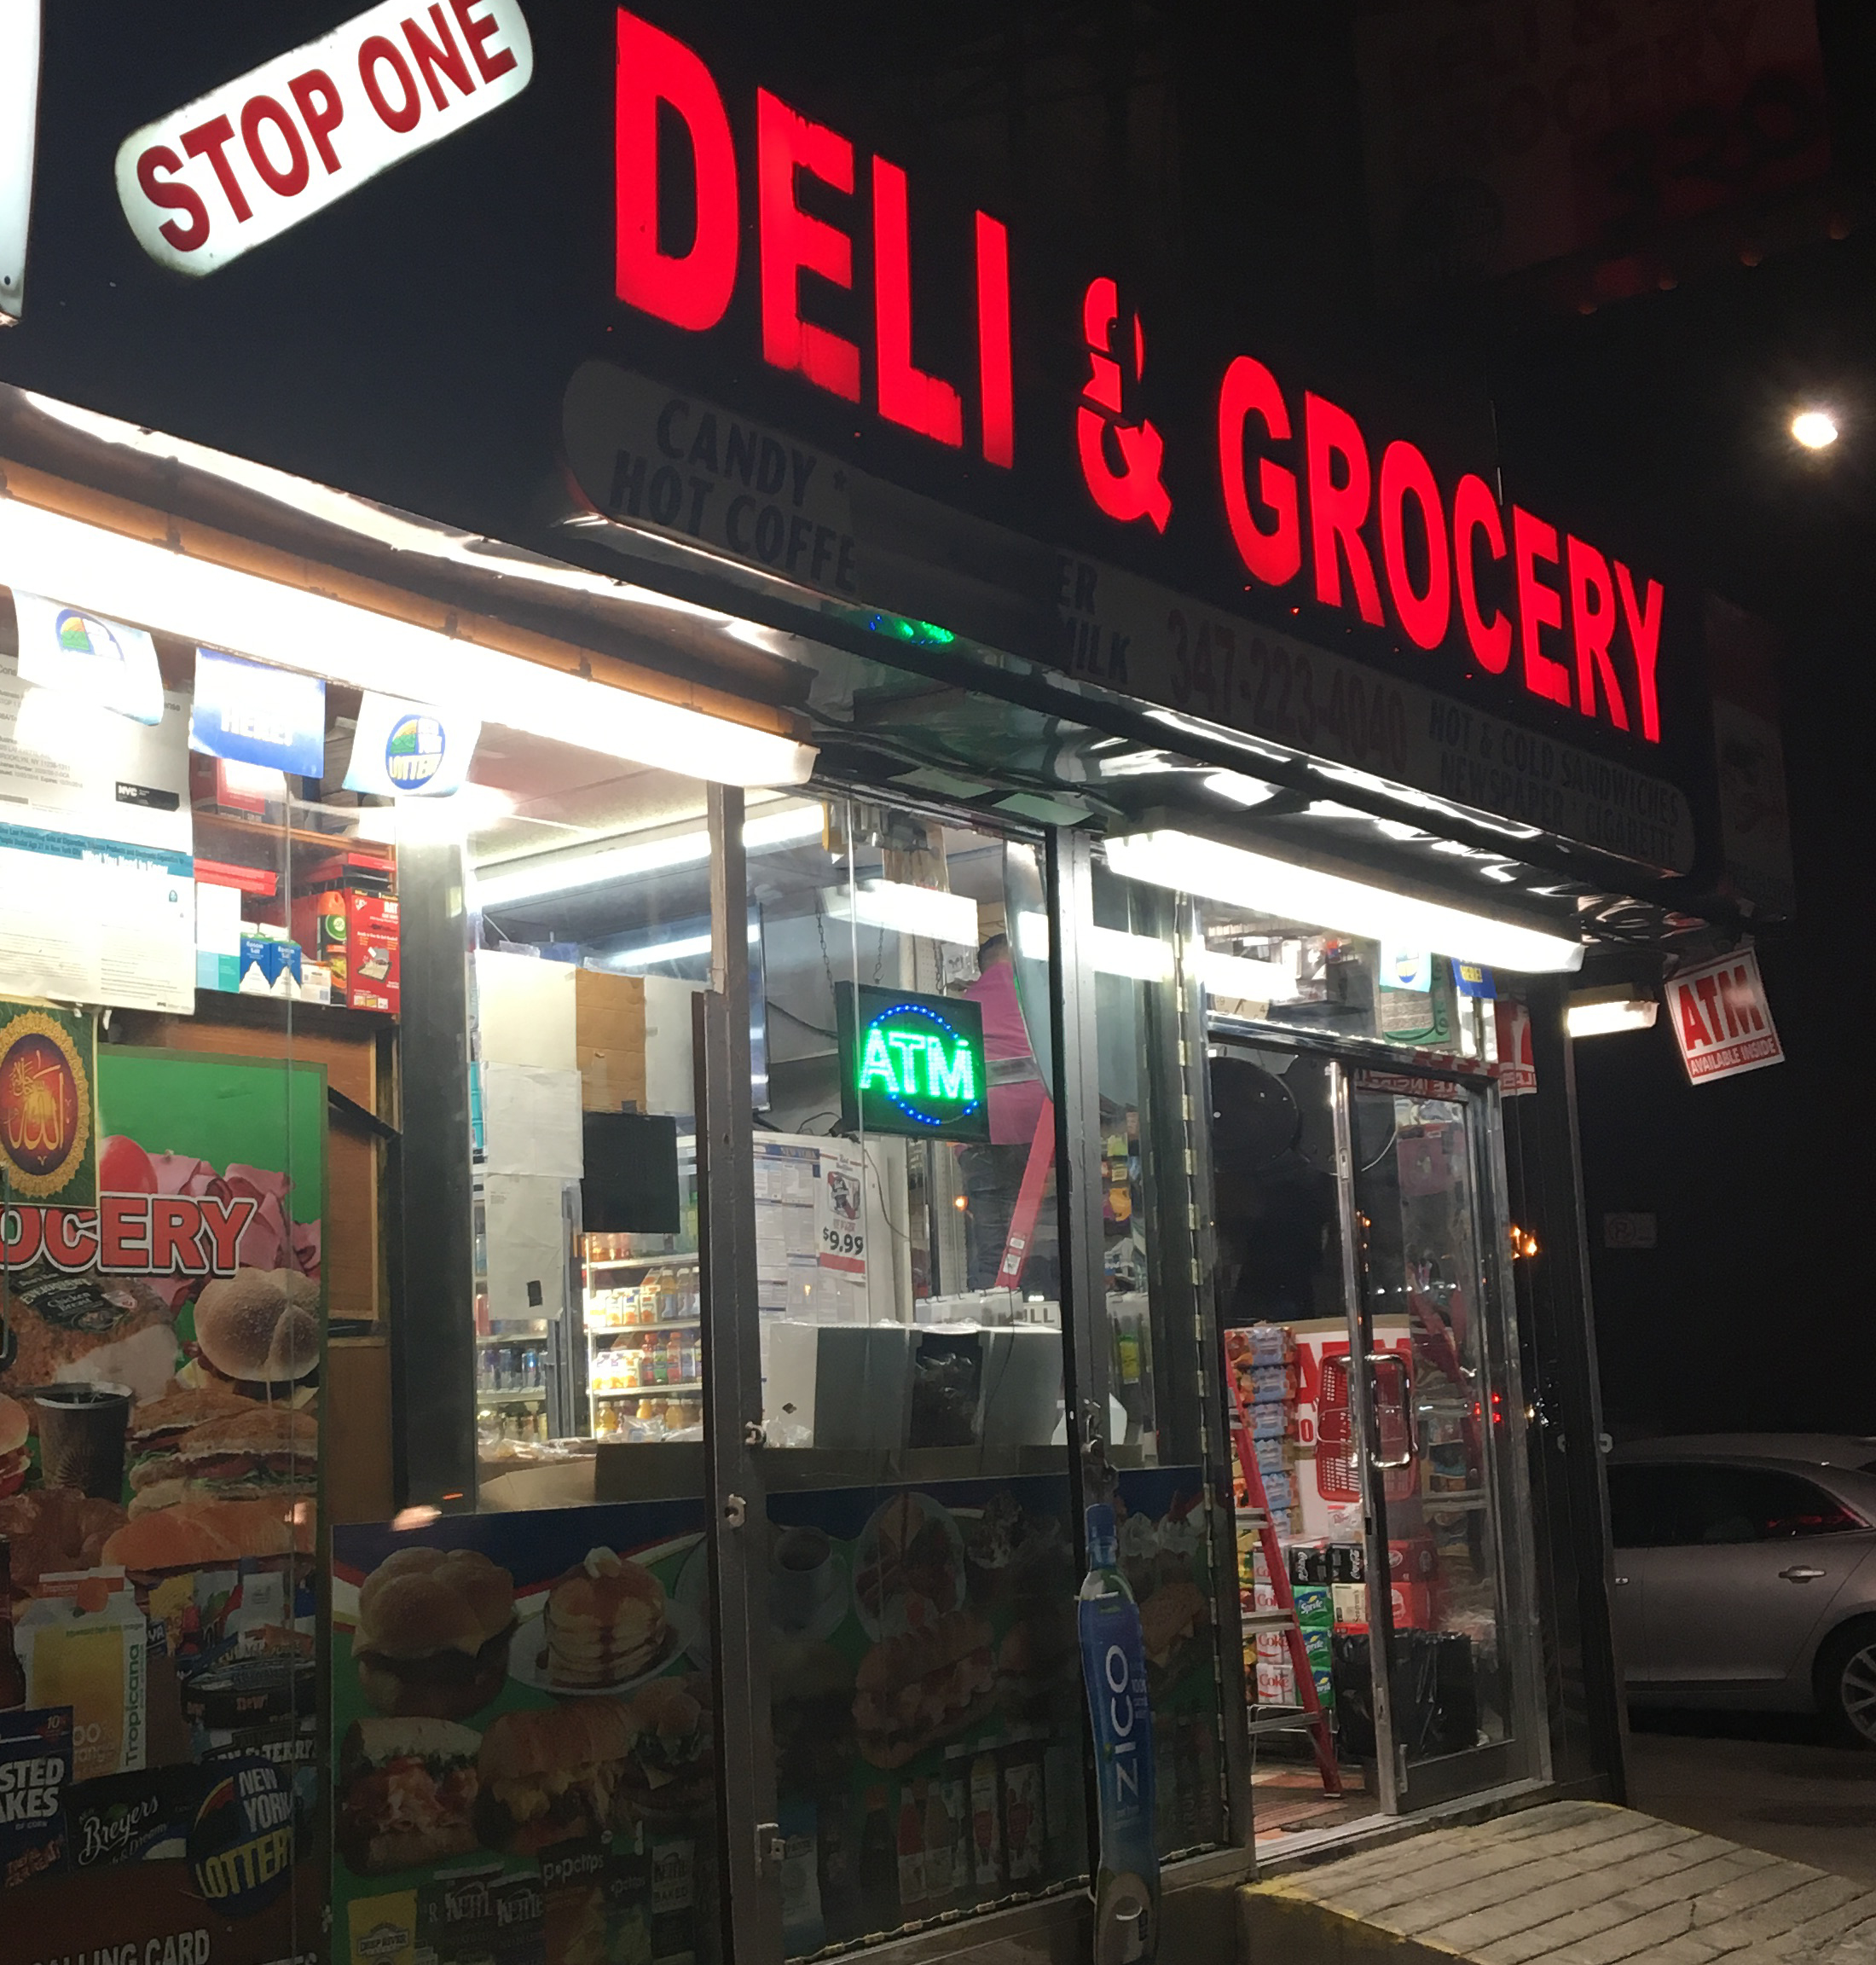 BP Adams Joins Yemeni Bodega Owners in Protest  of Trump's Muslim Travel Ban